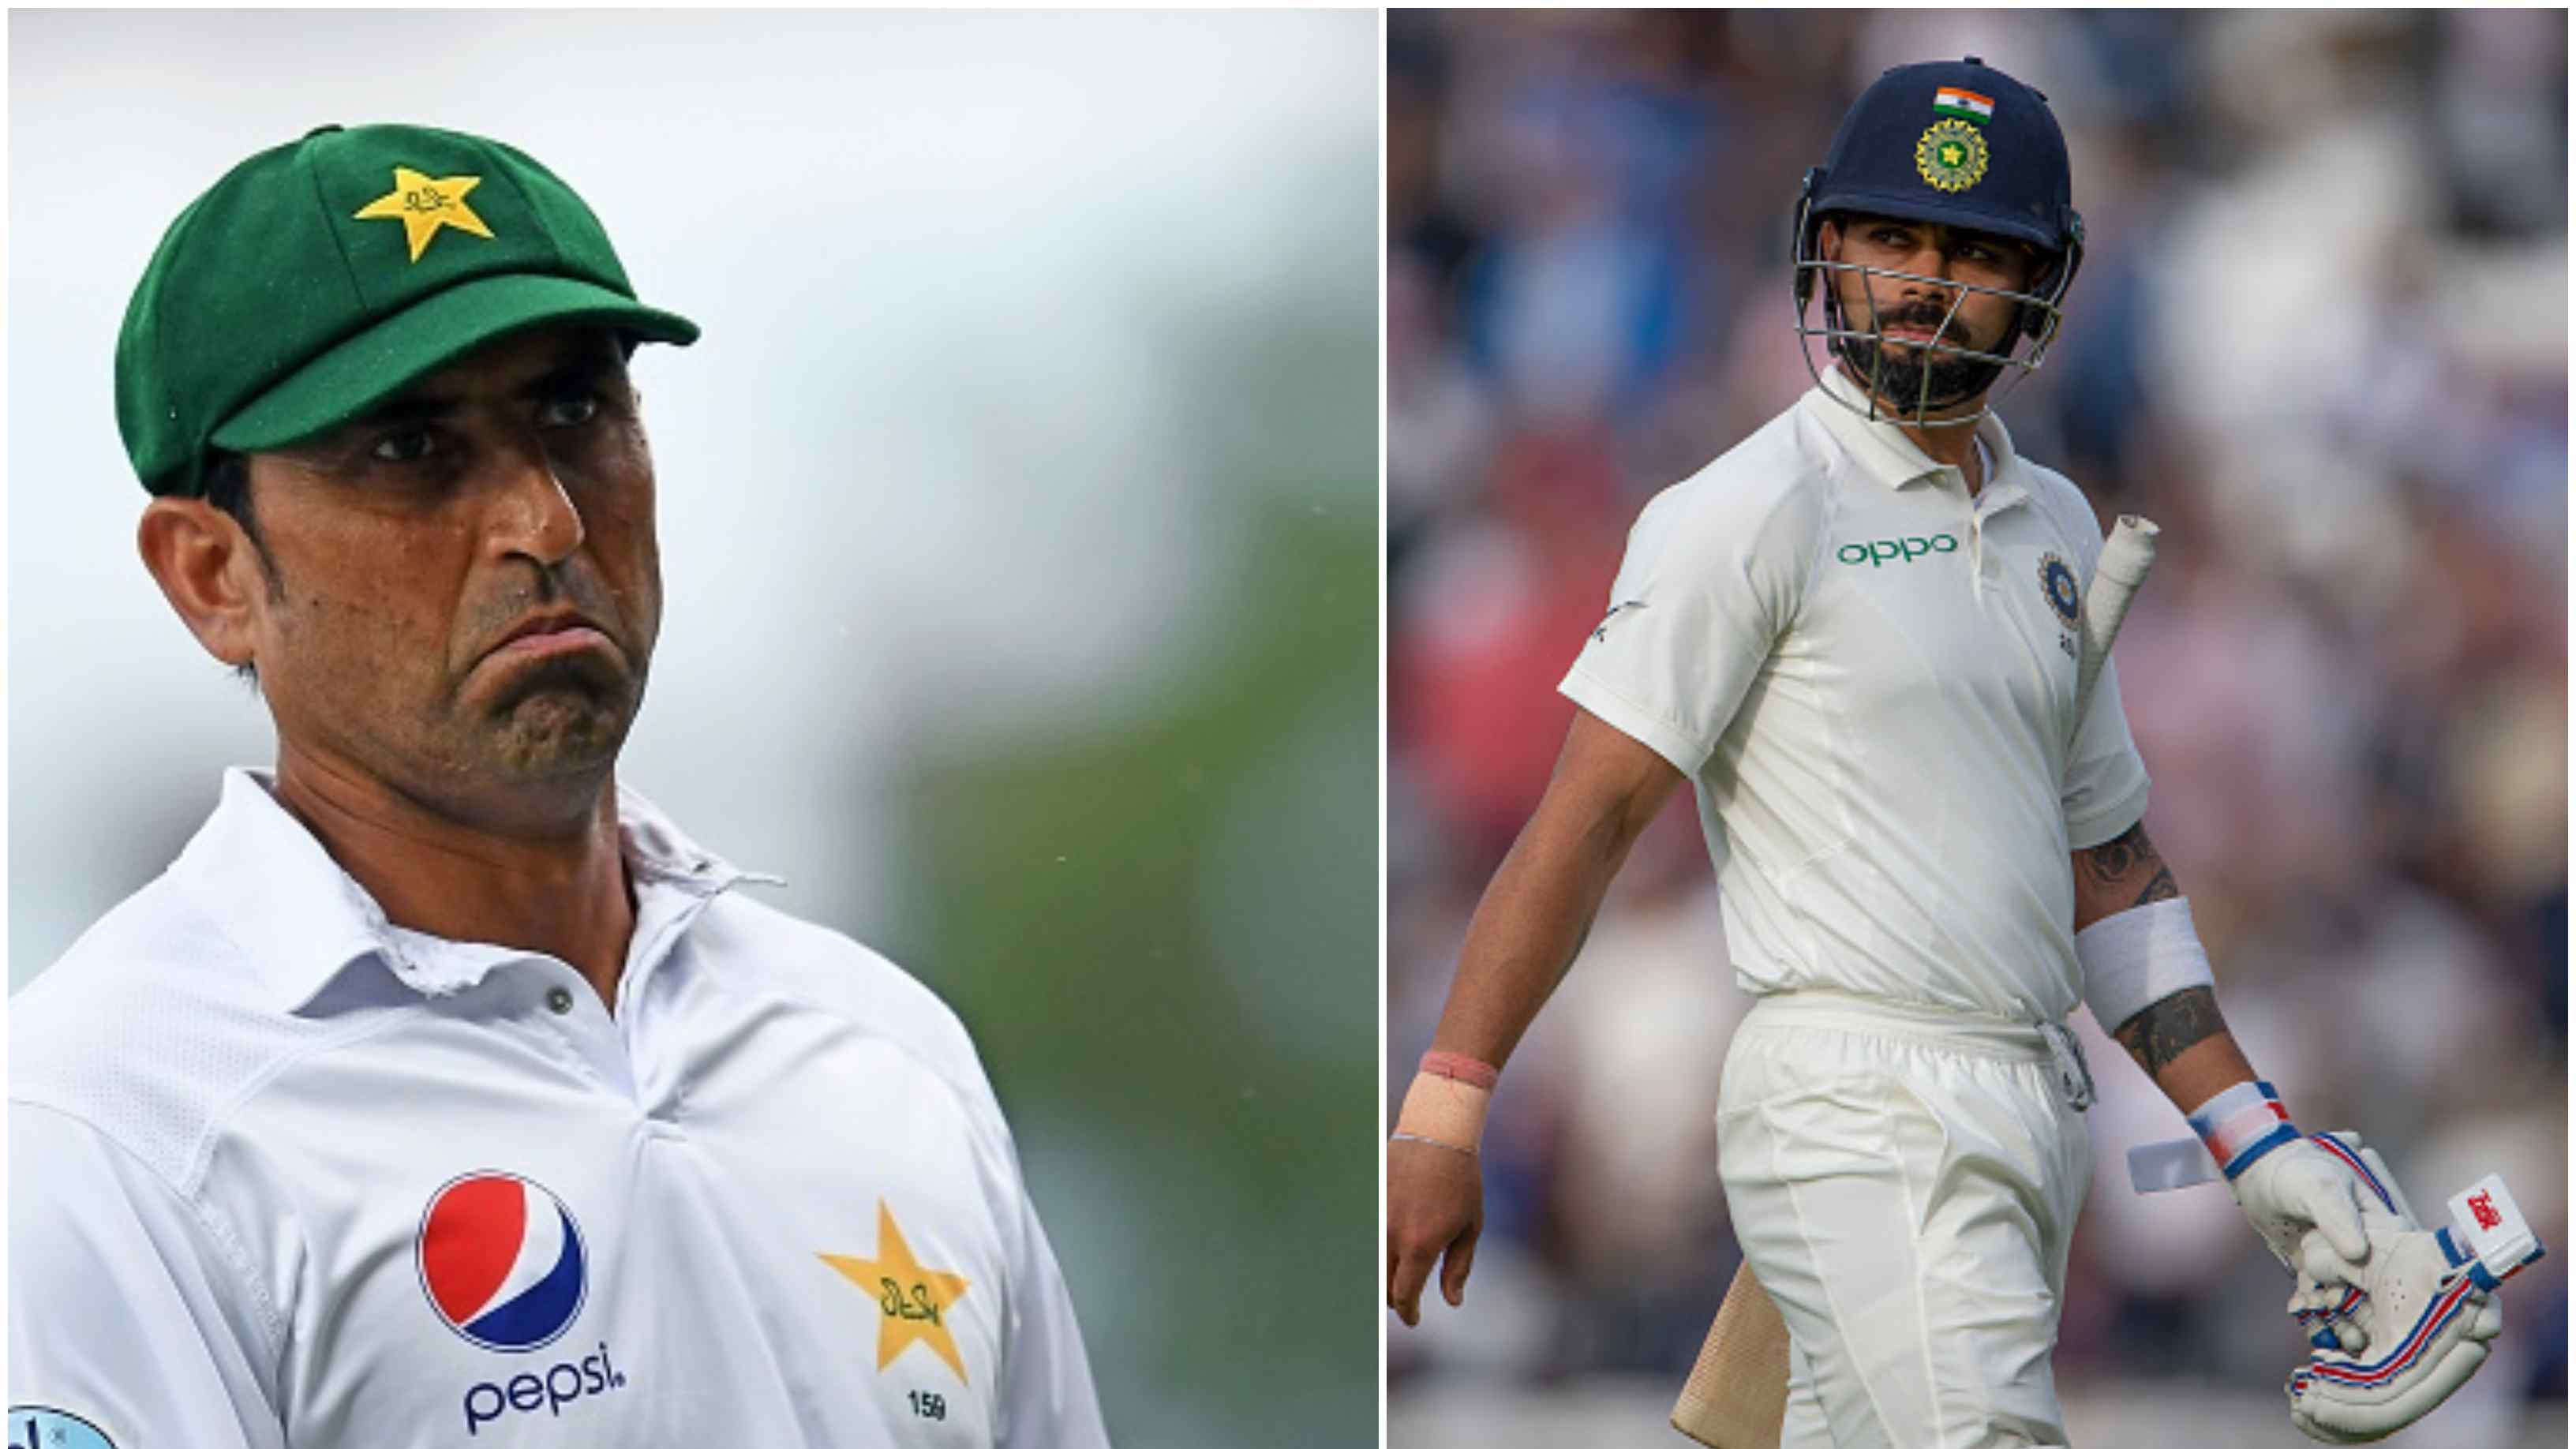 Younis Khan advises Indian cricketers to seek guidance from former players